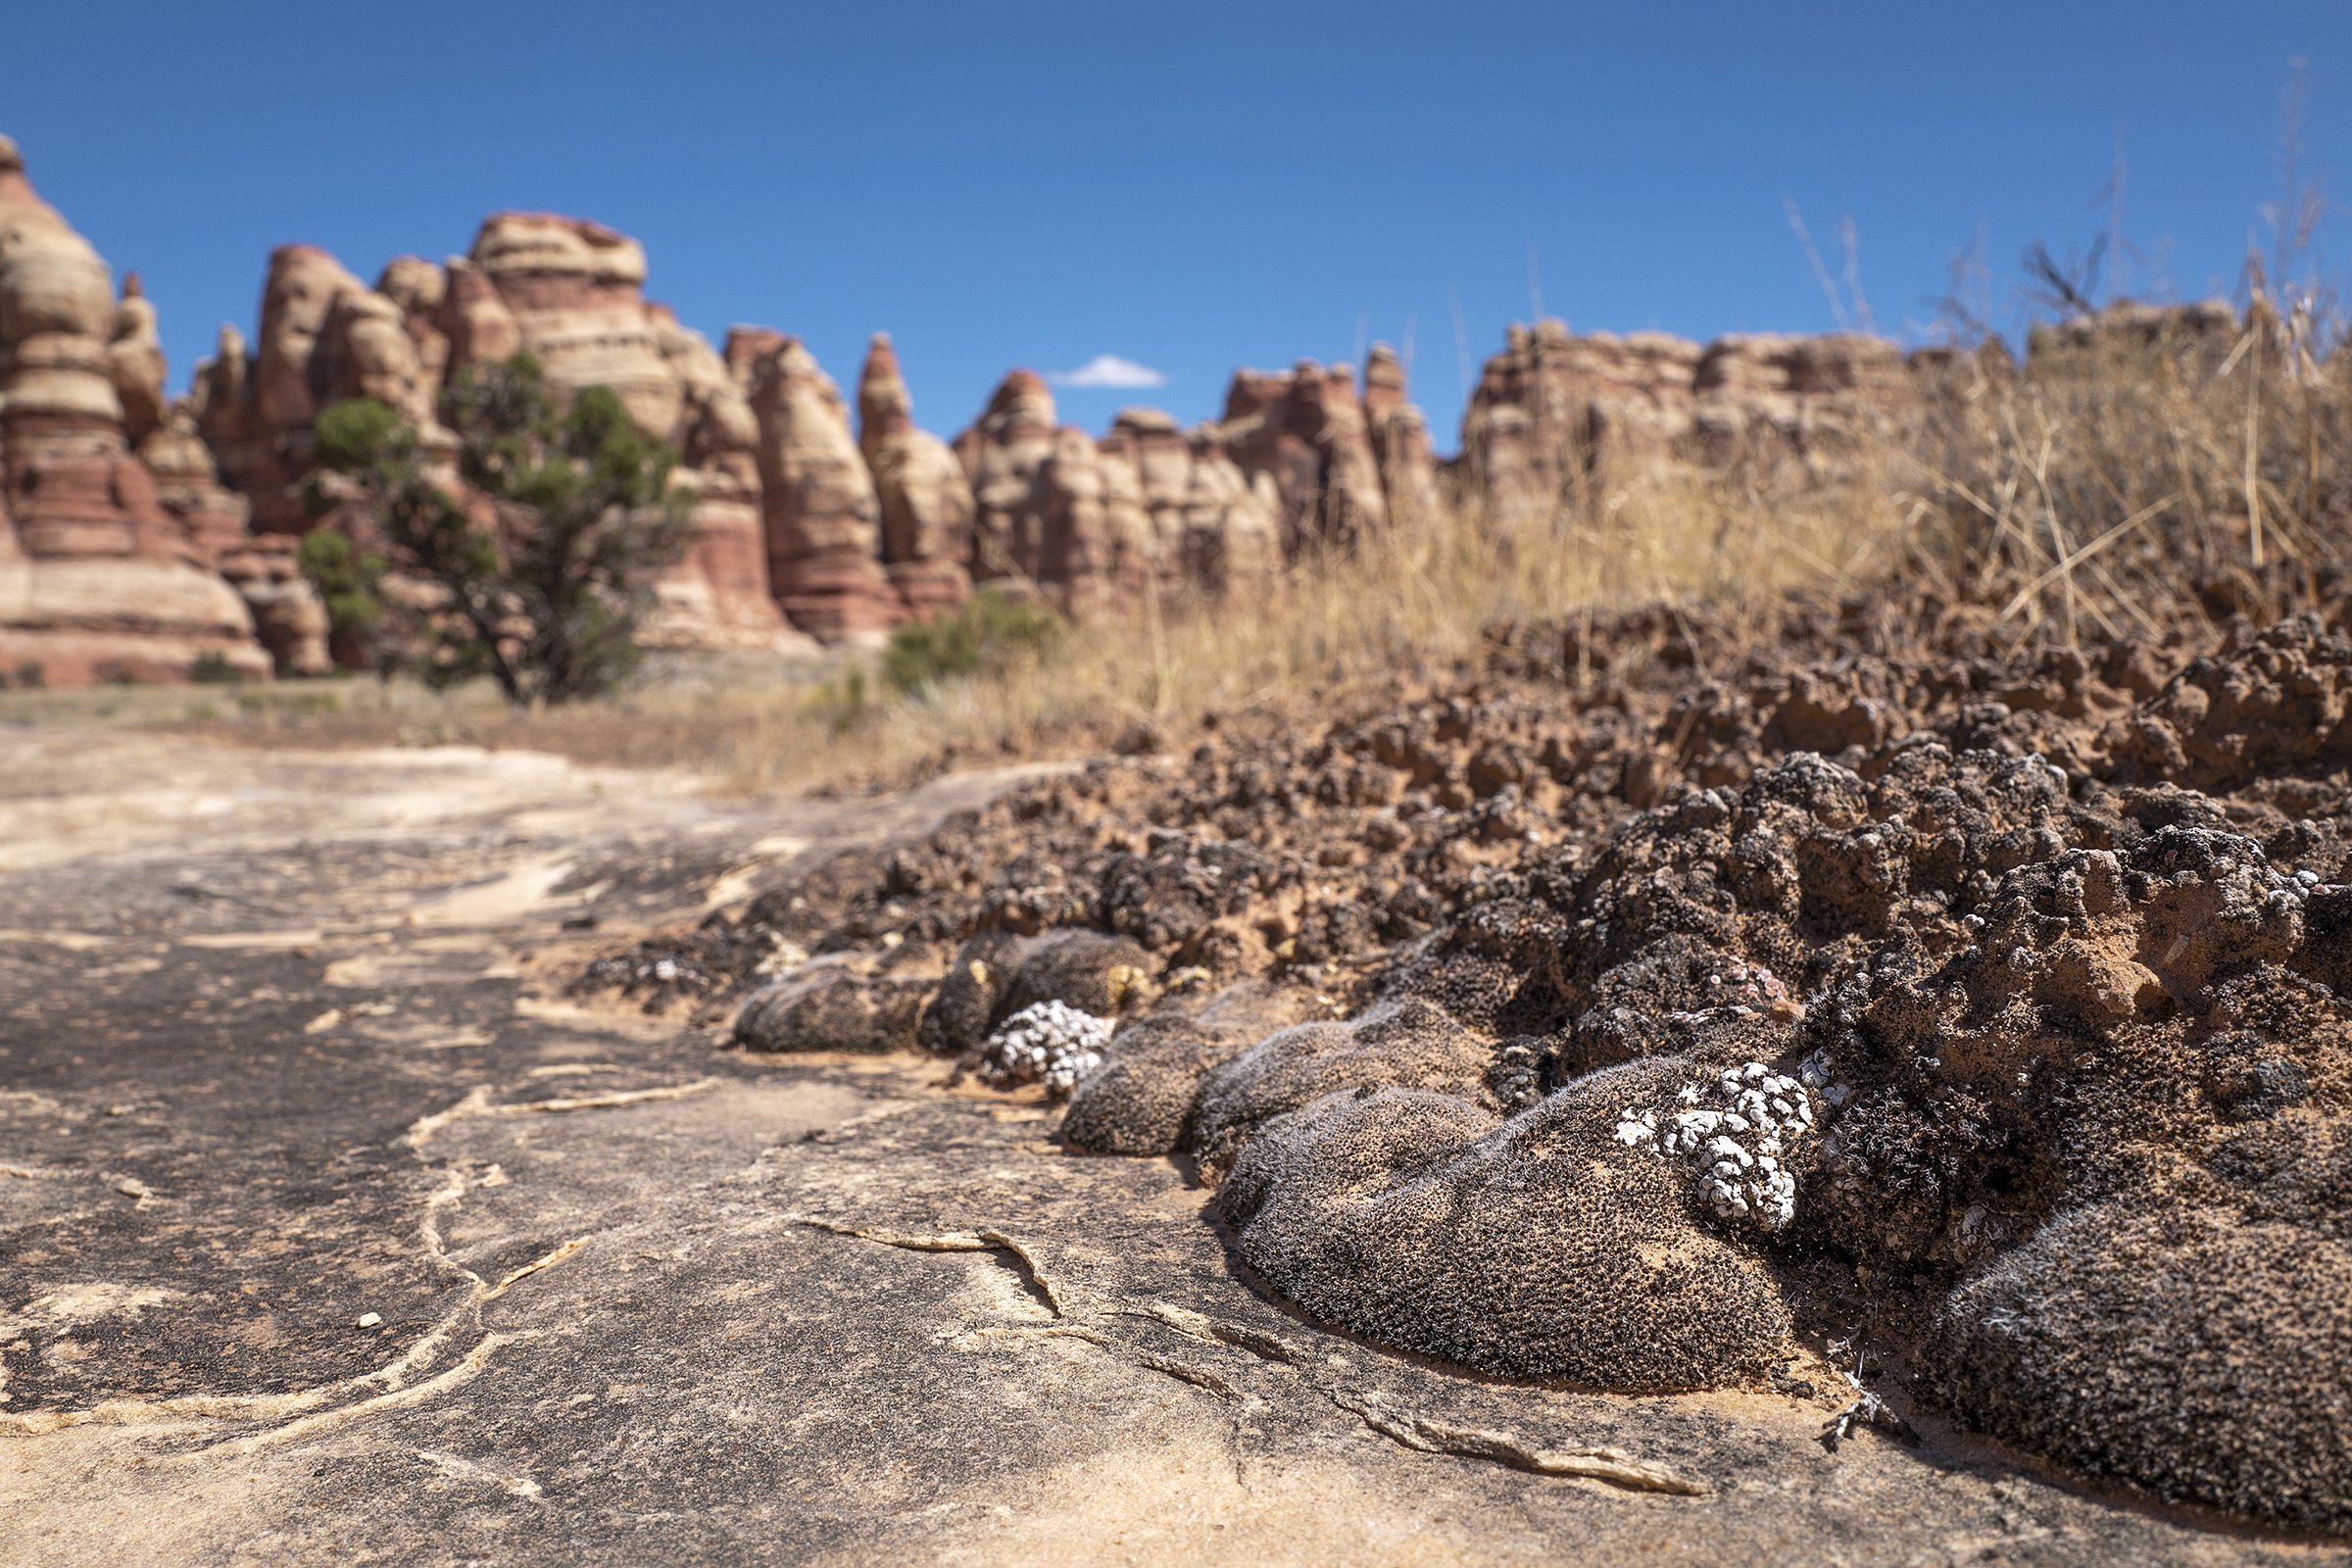 A secret area inside Canyonlands National Park, south of Moab, is pictured onThursday, Sept. 19, 2019. As part of the agreement with the National Park Service, the KSL TV and Deseret News crew promised not to disclose the path's location inside Canyonlands National Park.